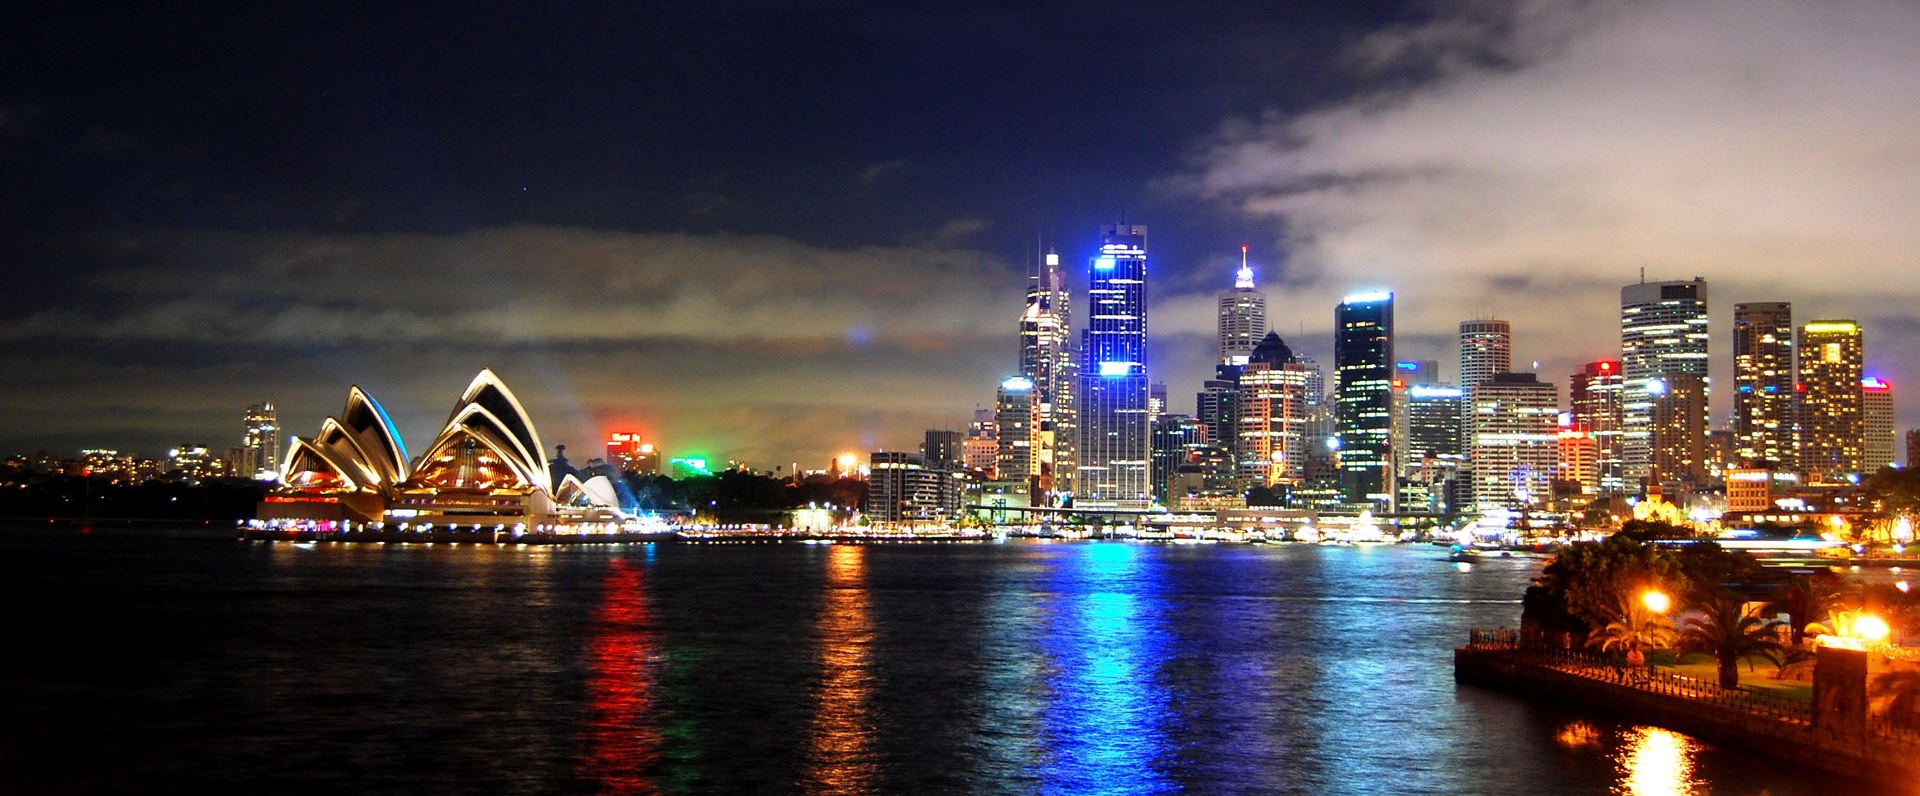 Sydney-harbour-bei-nacht-wallpaper